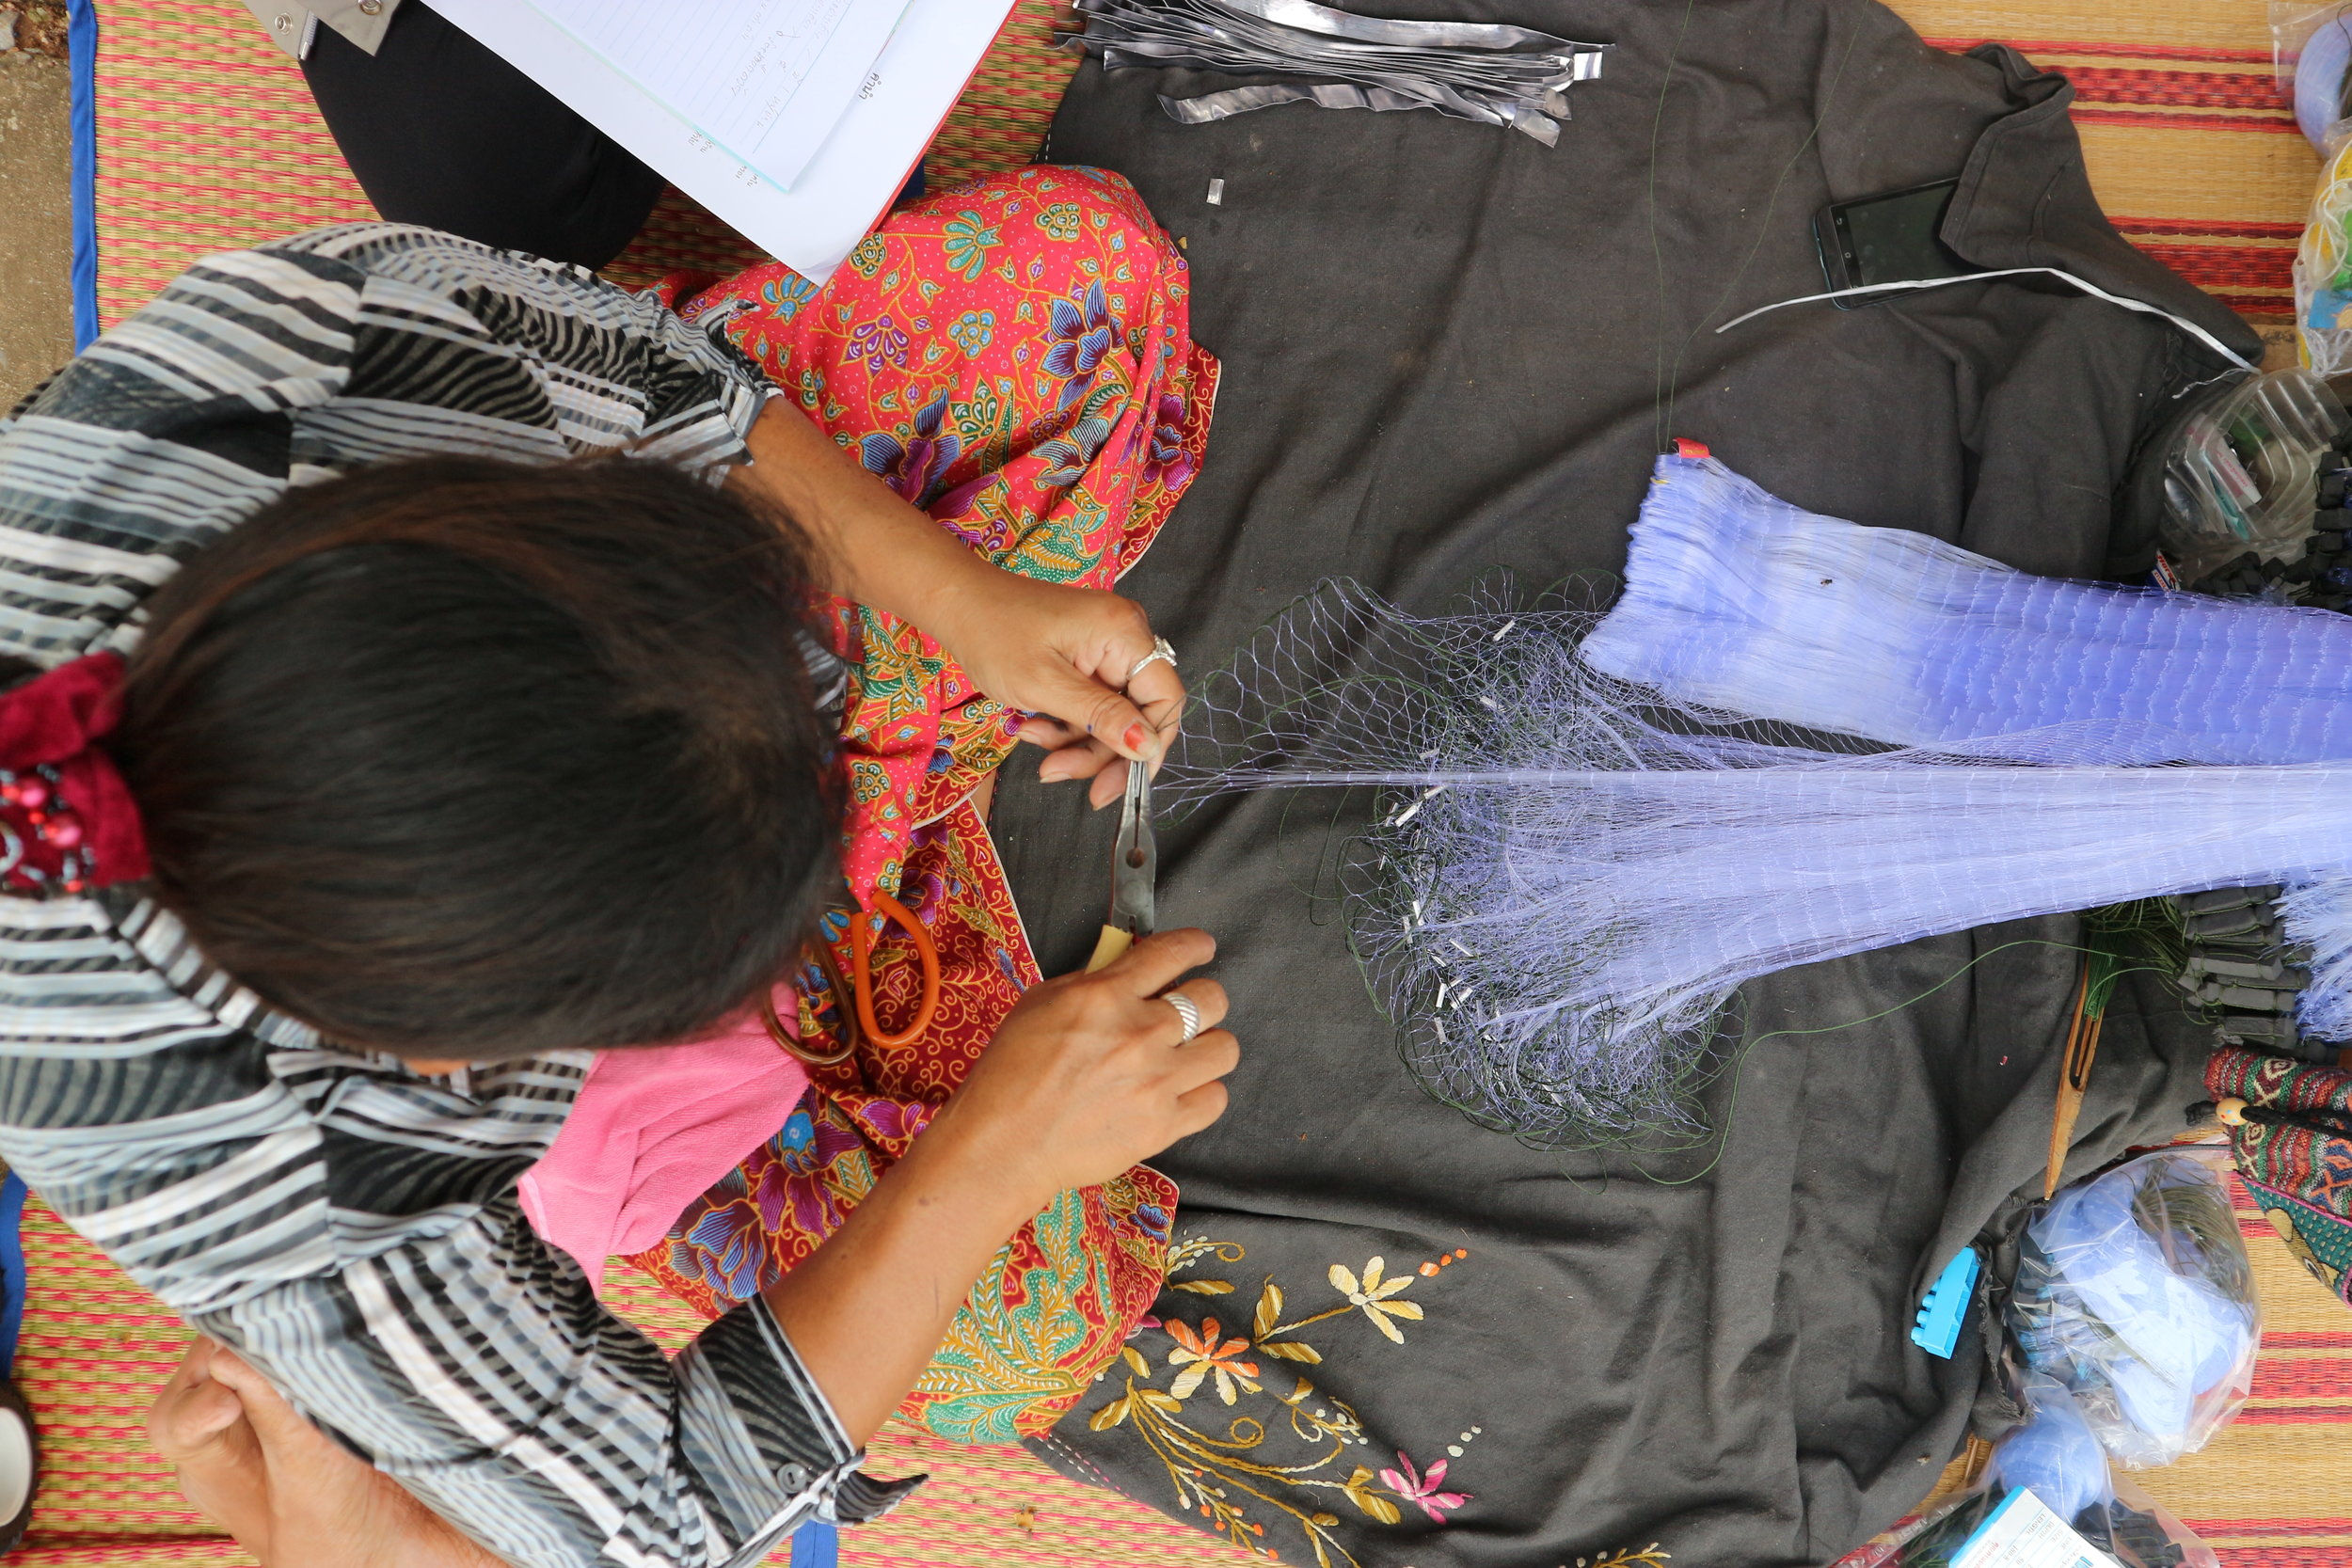 Fishing Net Homeworker in Khon Kaen, Thailand - How can the piece rates for homeworkers be increased so they can earn a living wage?